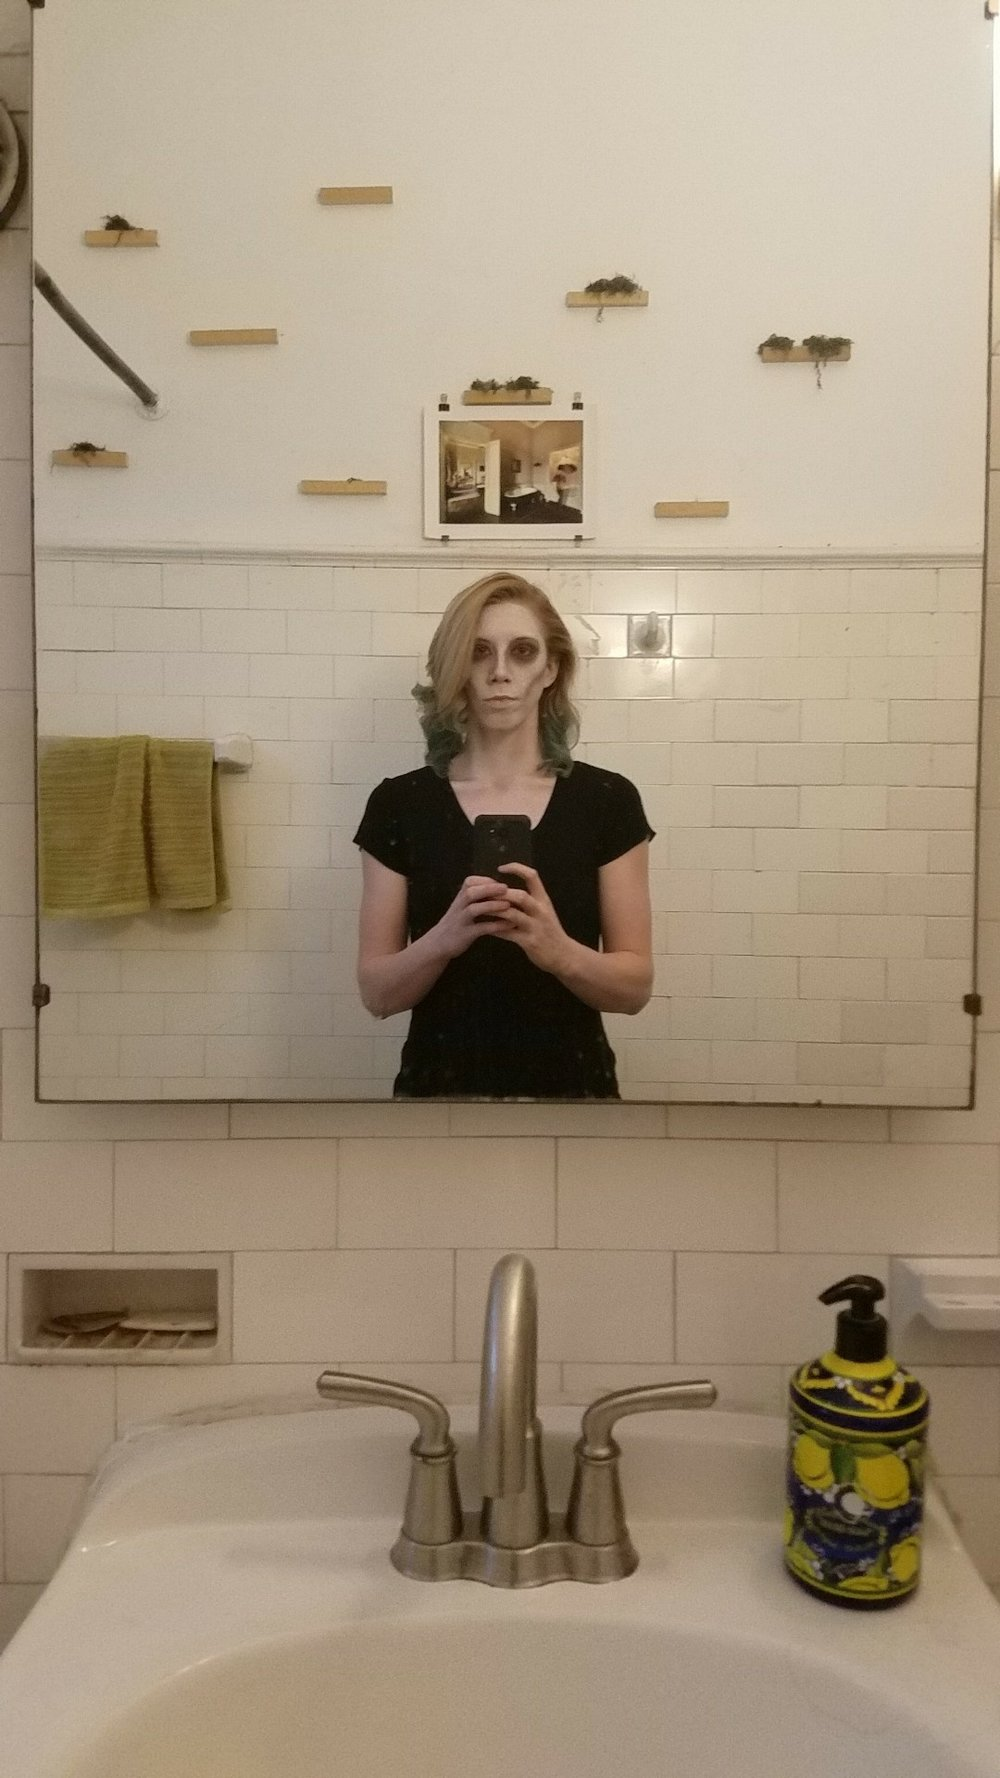 Creepy Ellen, Creepy Bathroom